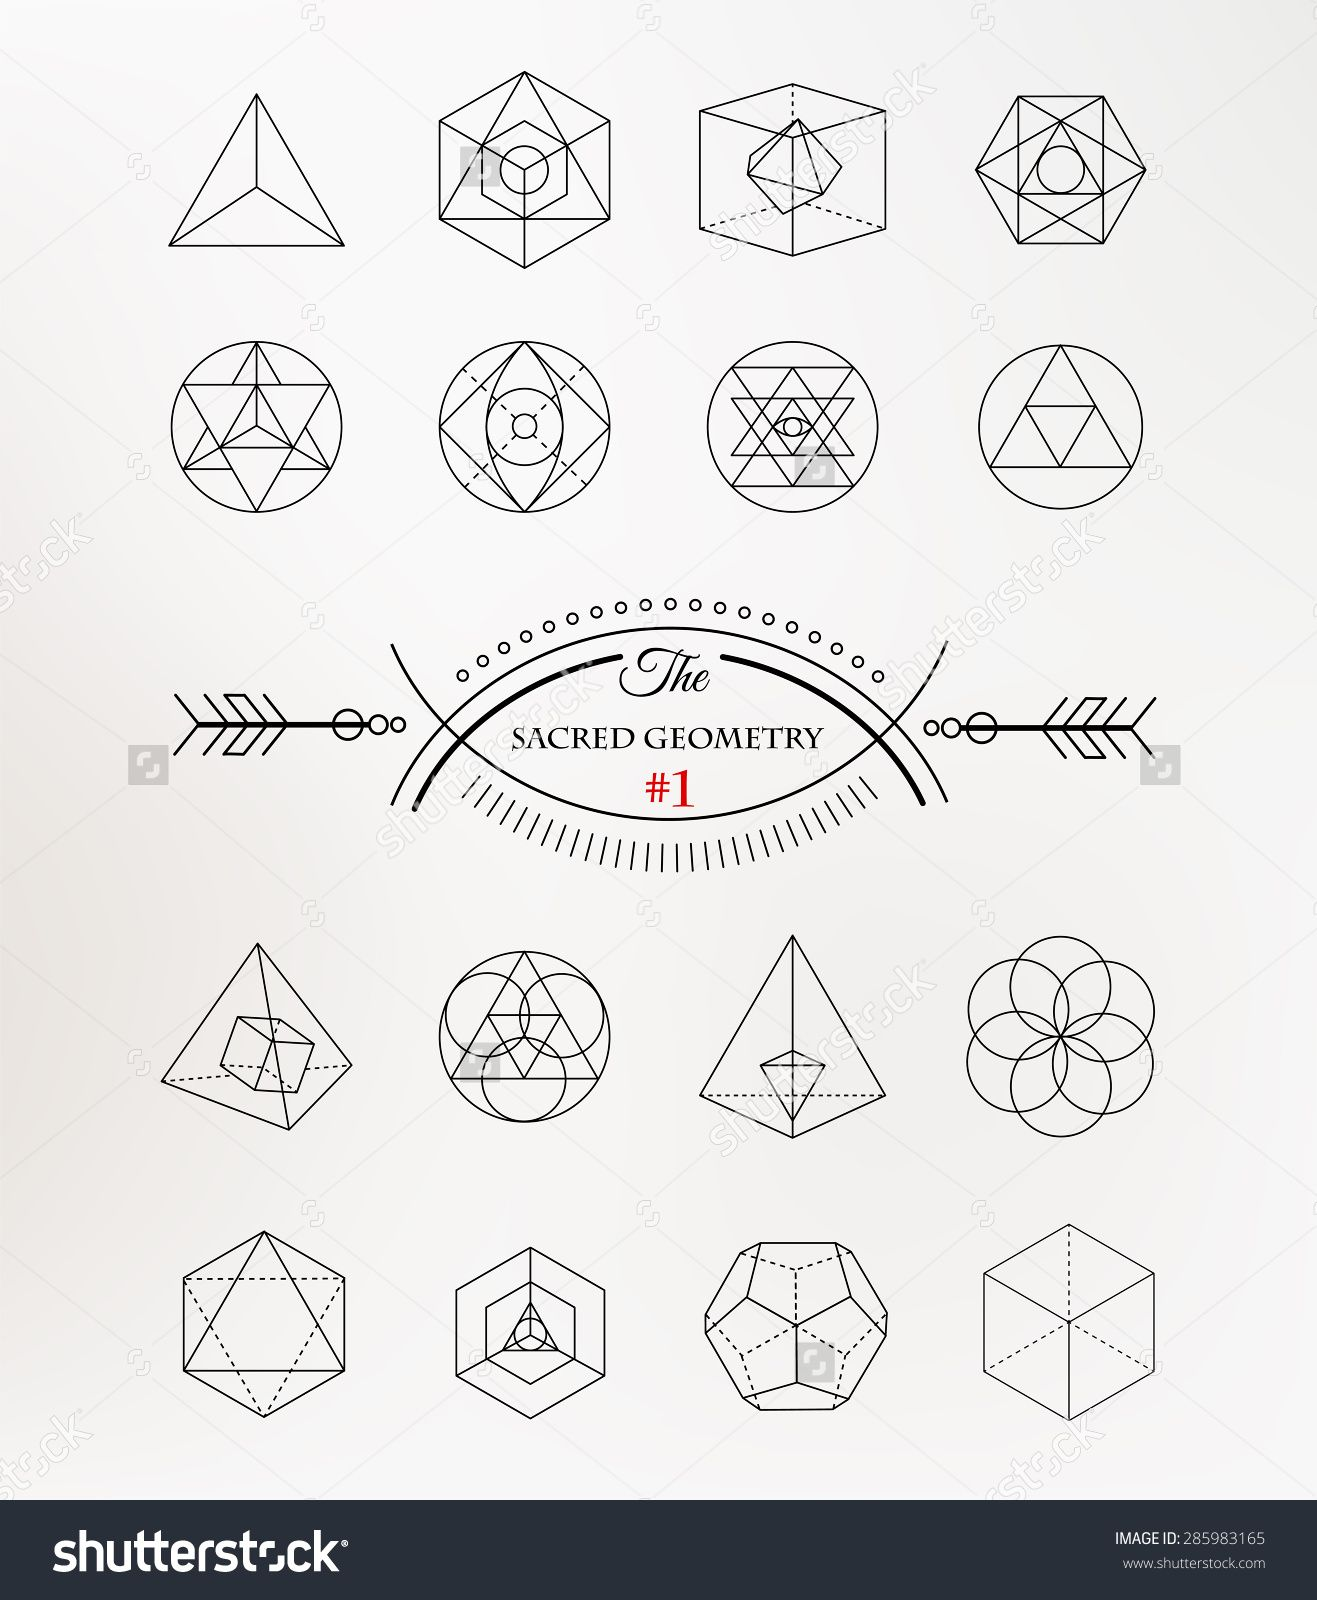 Sacred geometry alchemy religion philosophy spirituality alchemy religion philosophy spirituality hipster symbols and elements stock biocorpaavc Image collections